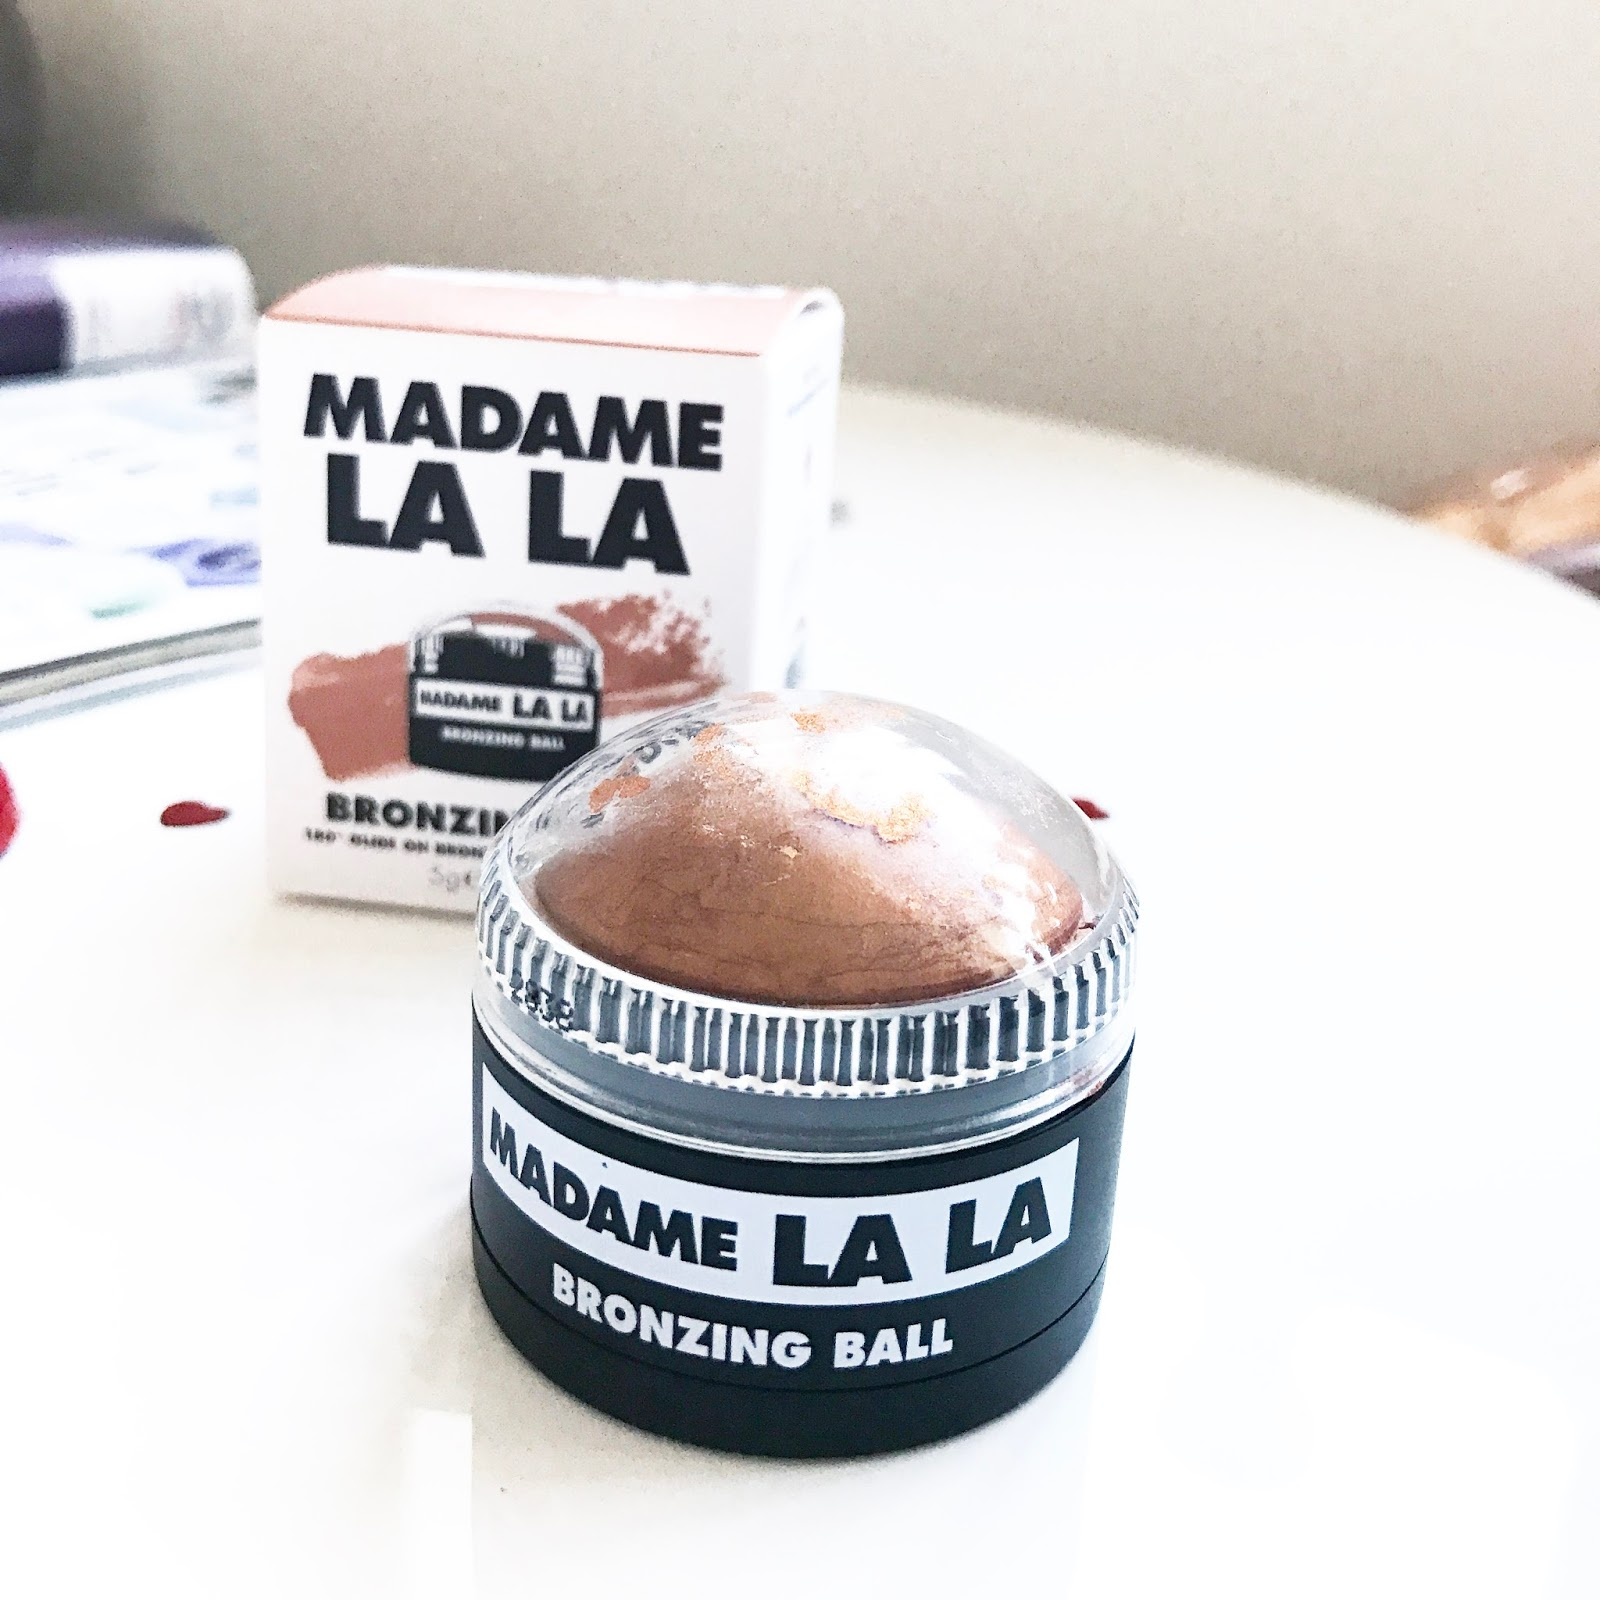 madame lala bronzing ball